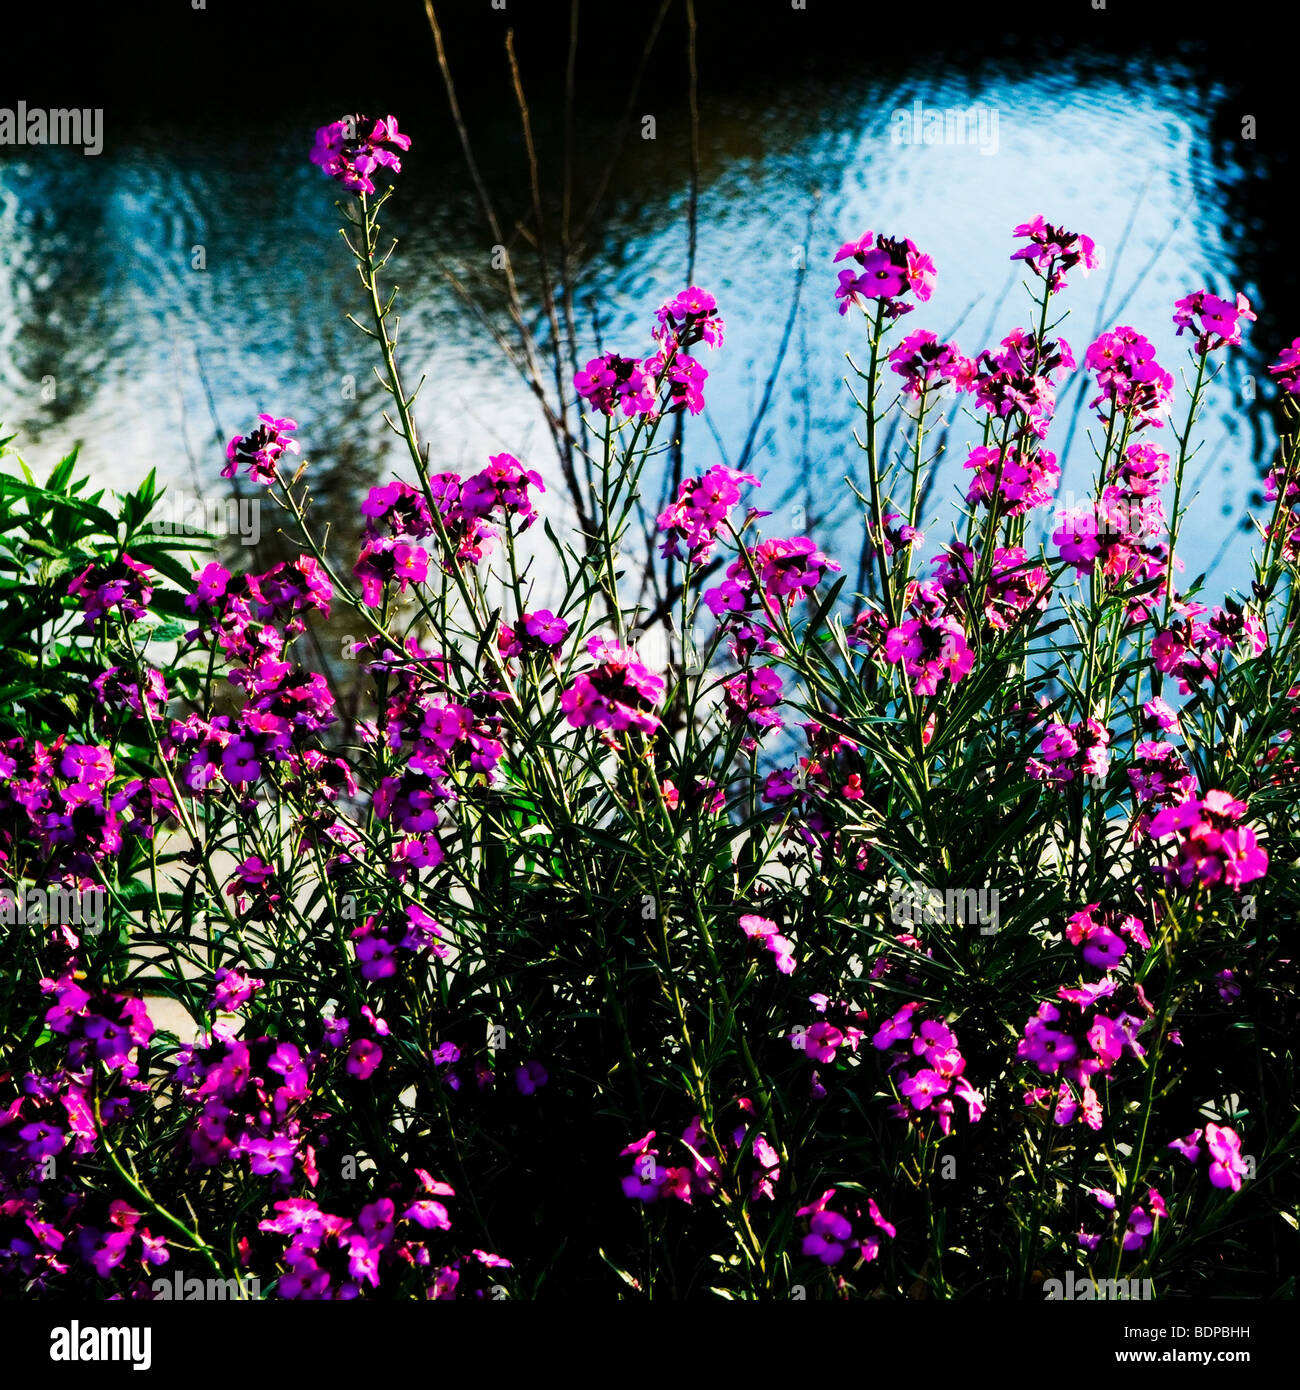 wild pink flowers against rippling water - Stock Image